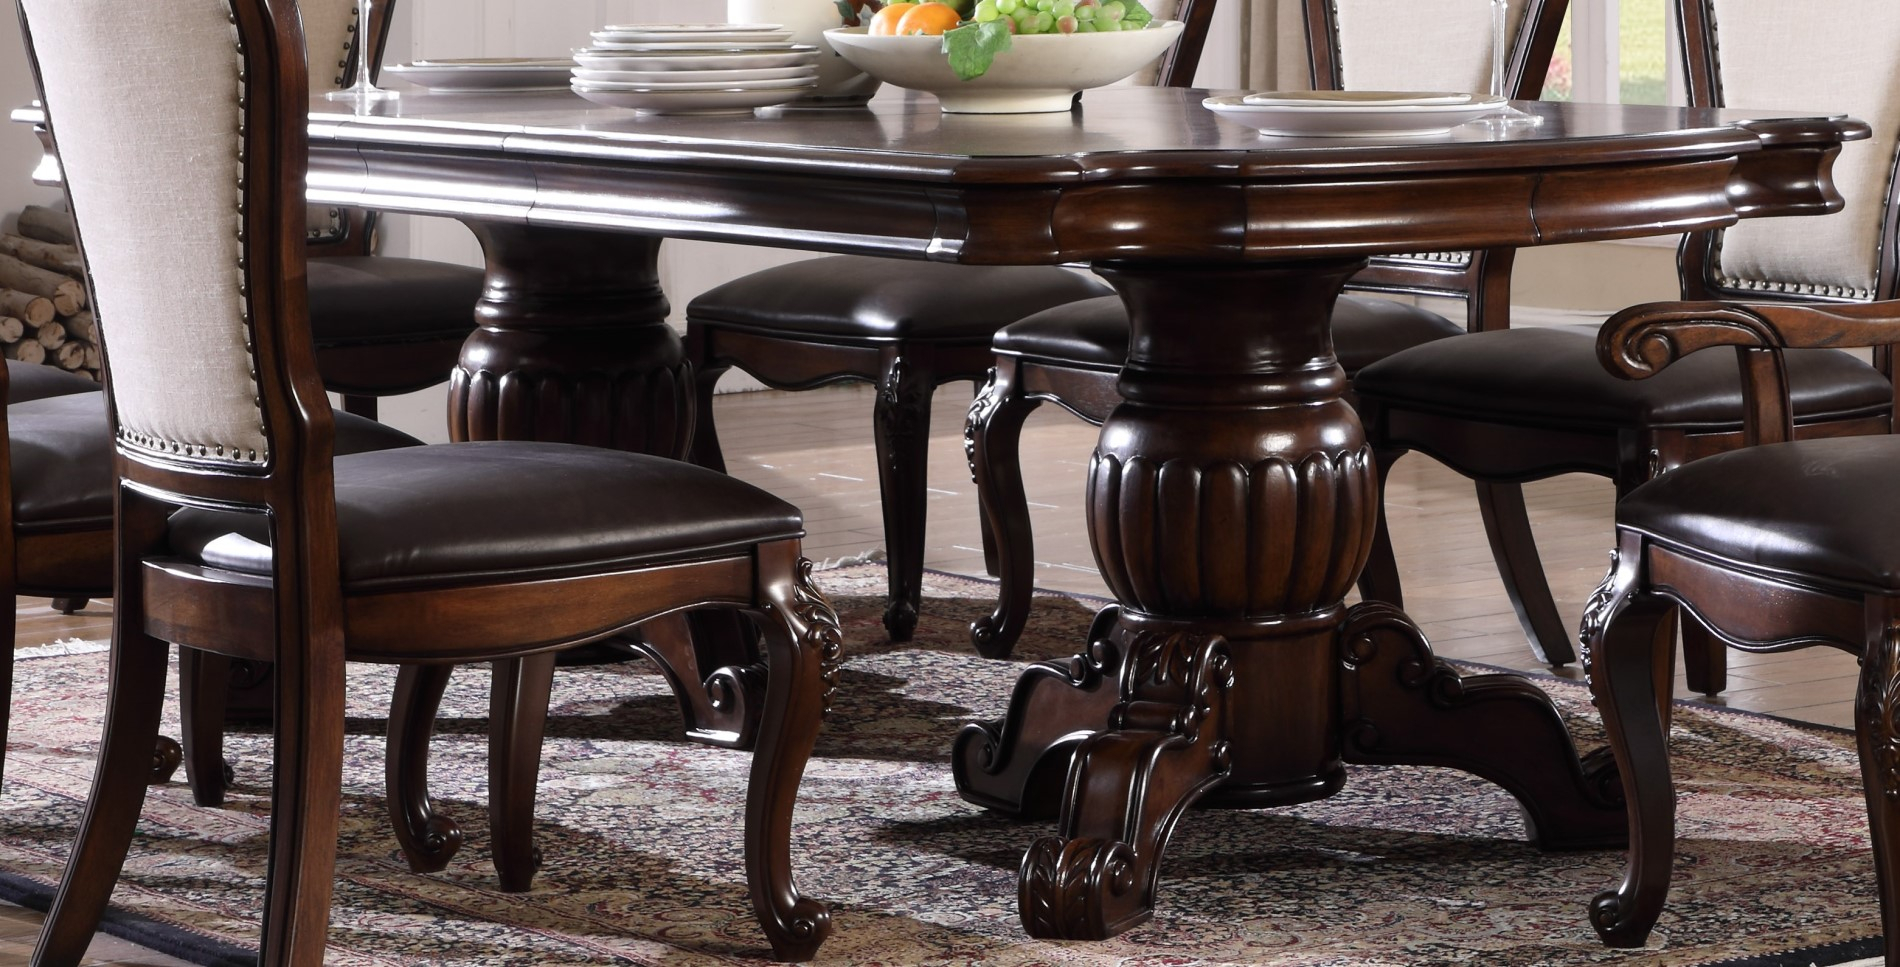 Brentwood Traditional 5Pc Double Pedestal Dining Table Set Pertaining To Most Recent Villani Pedestal Dining Tables (View 7 of 15)